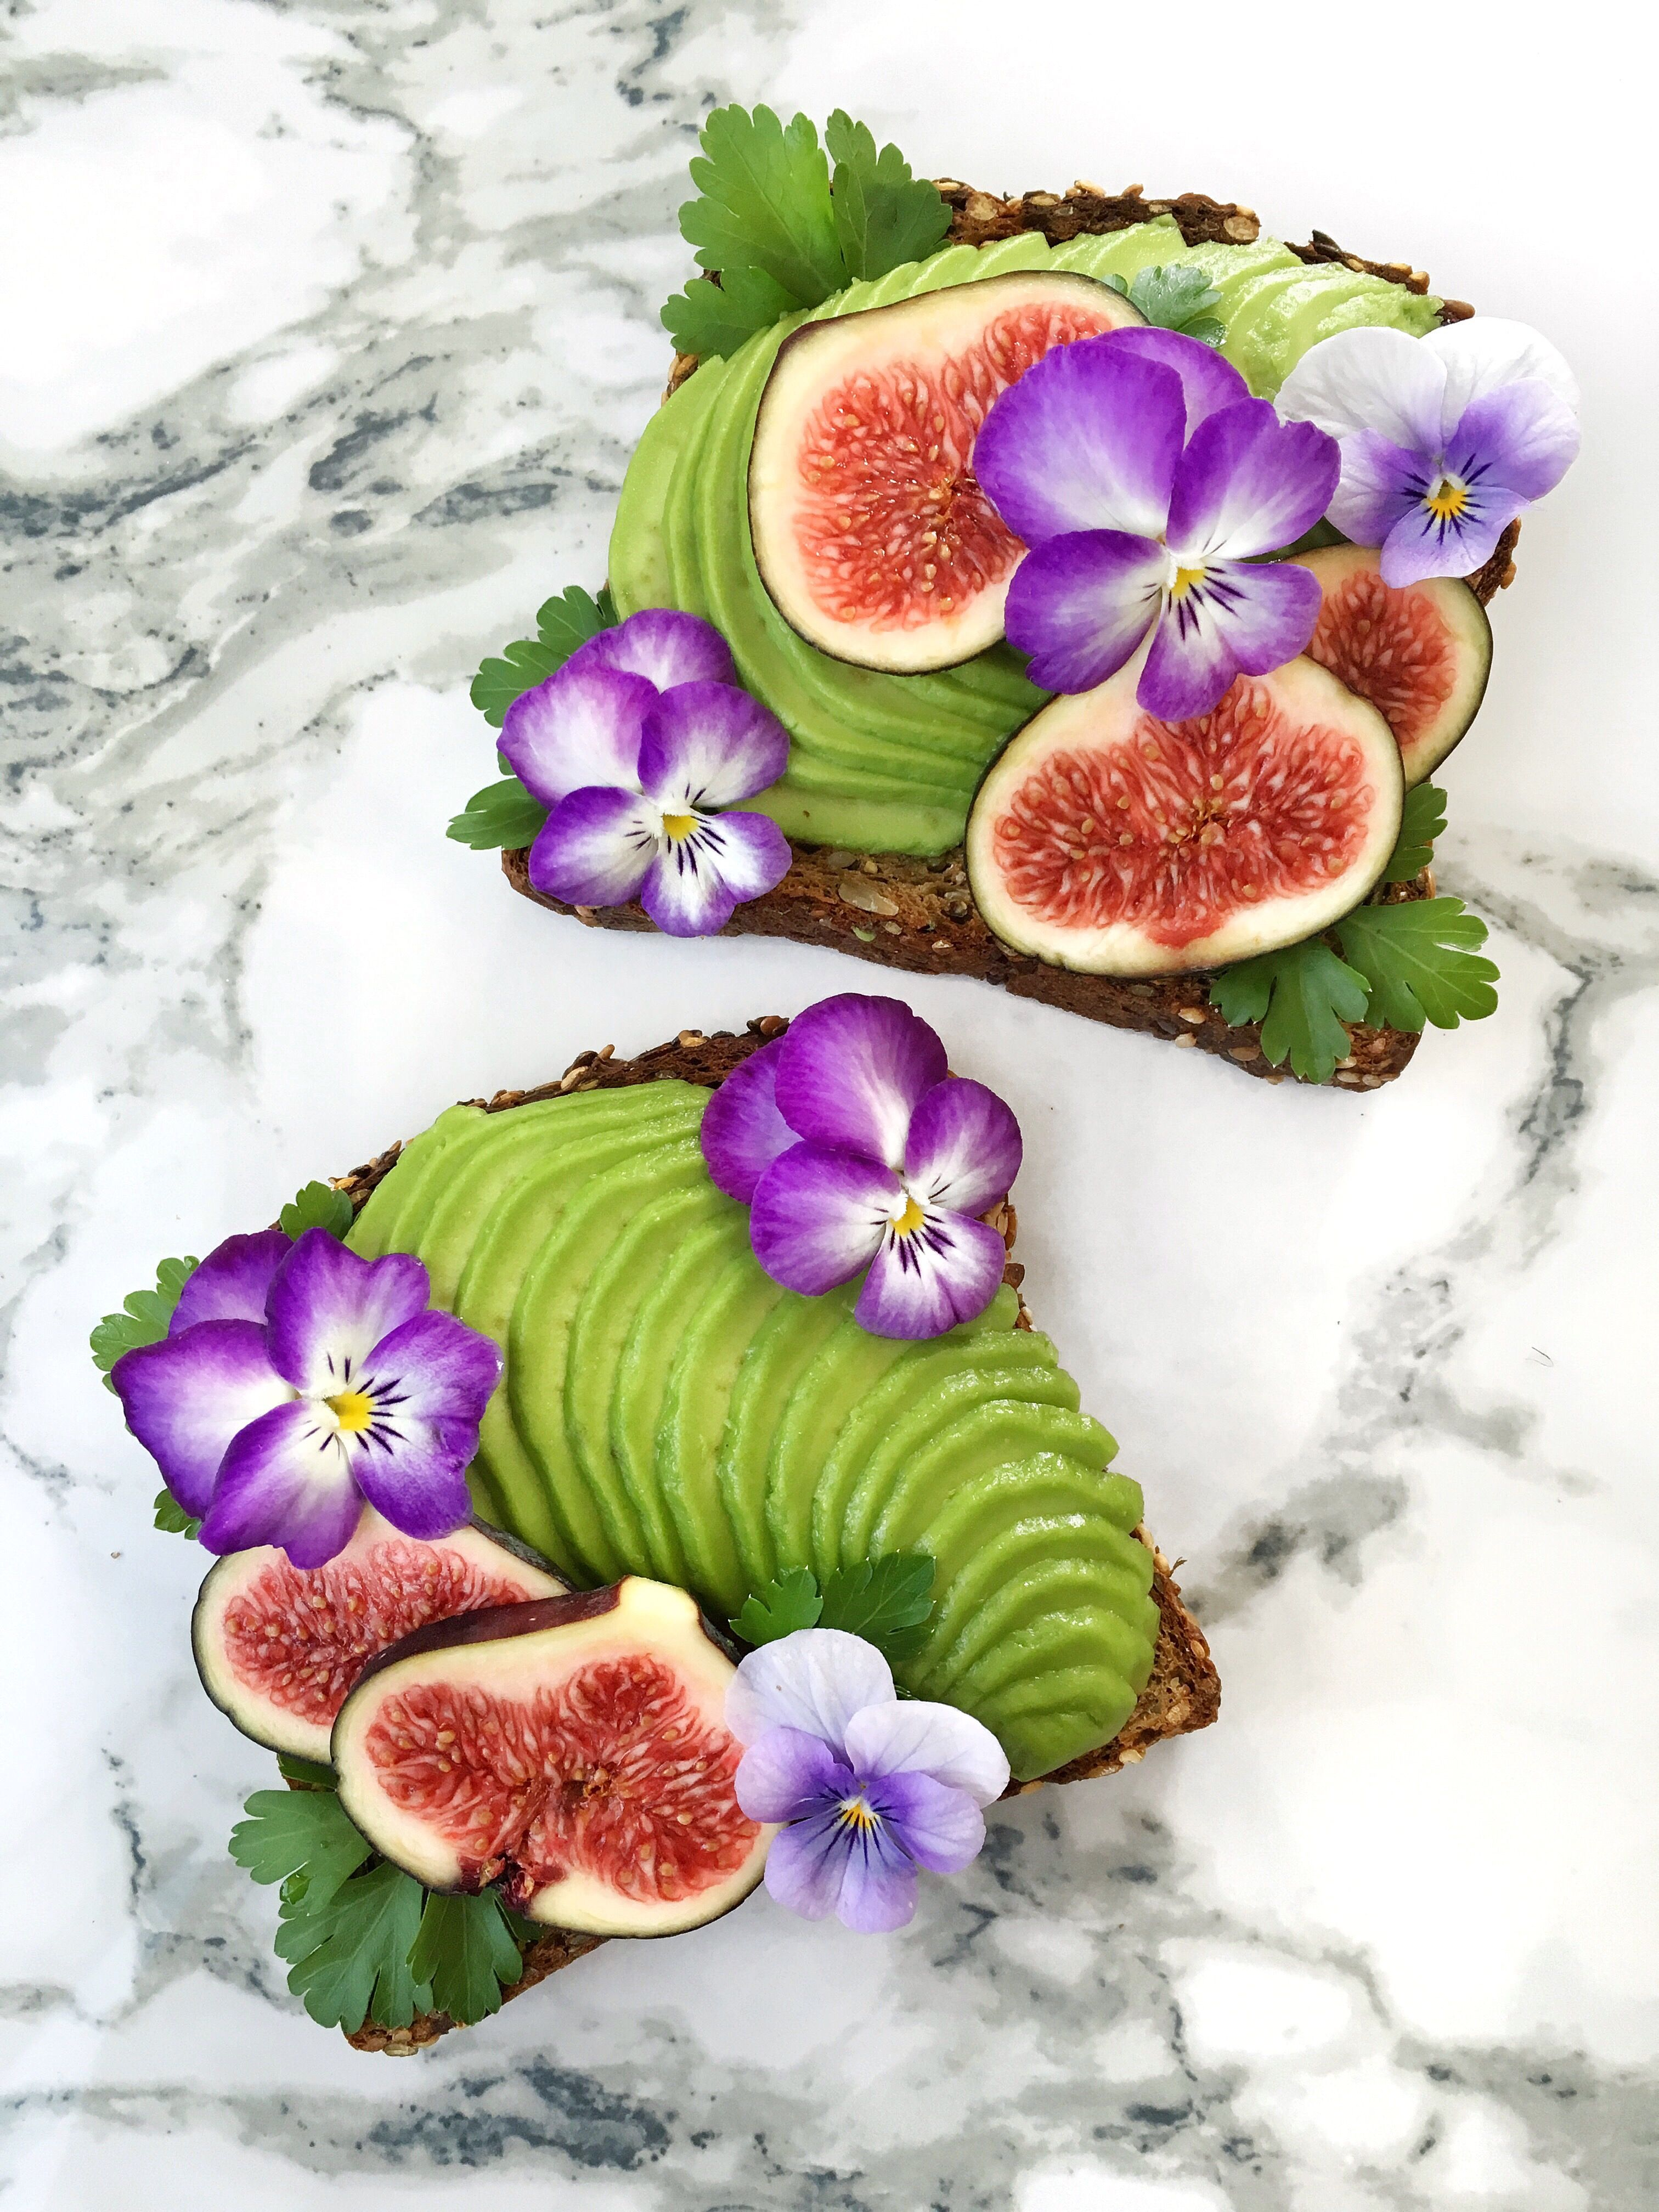 Avocado Toast Parsley Figs And Edible Flowers Recipes To Try